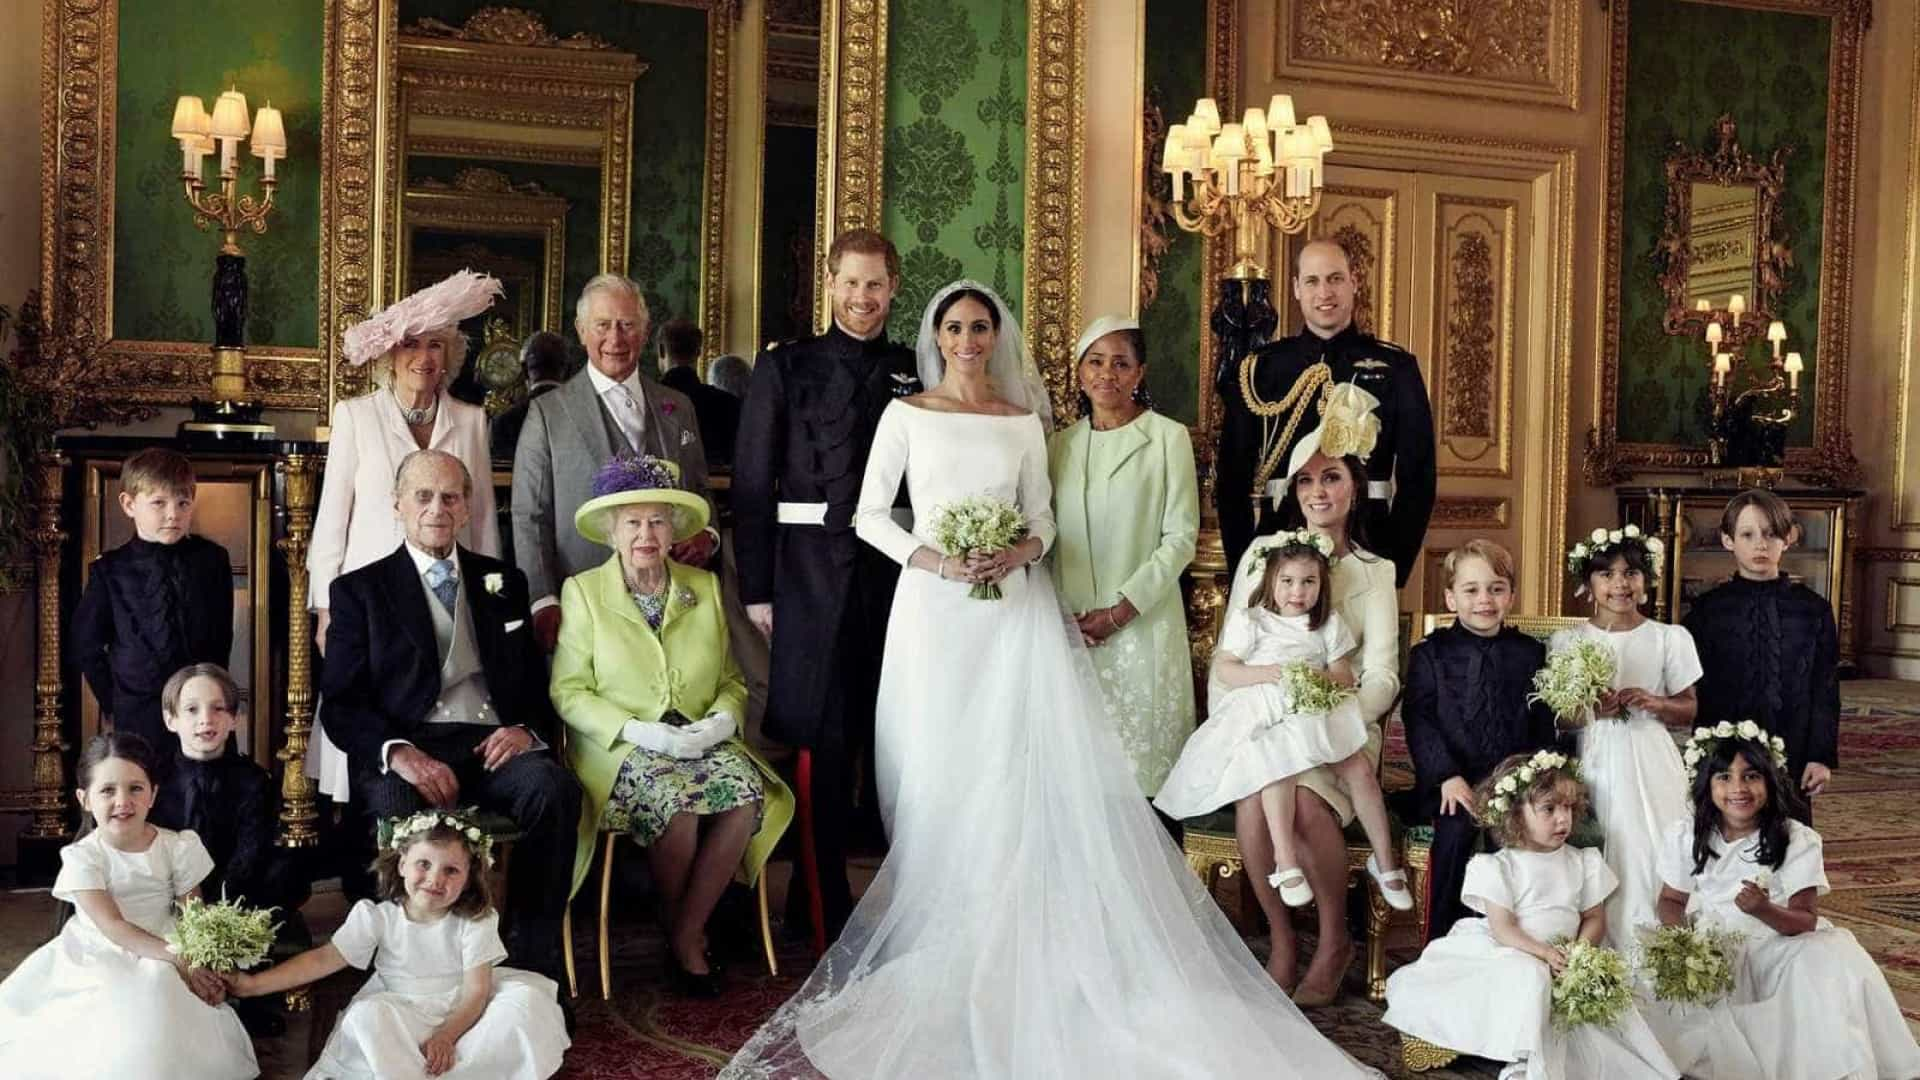 Harry e Meghan divulgam as fotos oficiais do casamento real